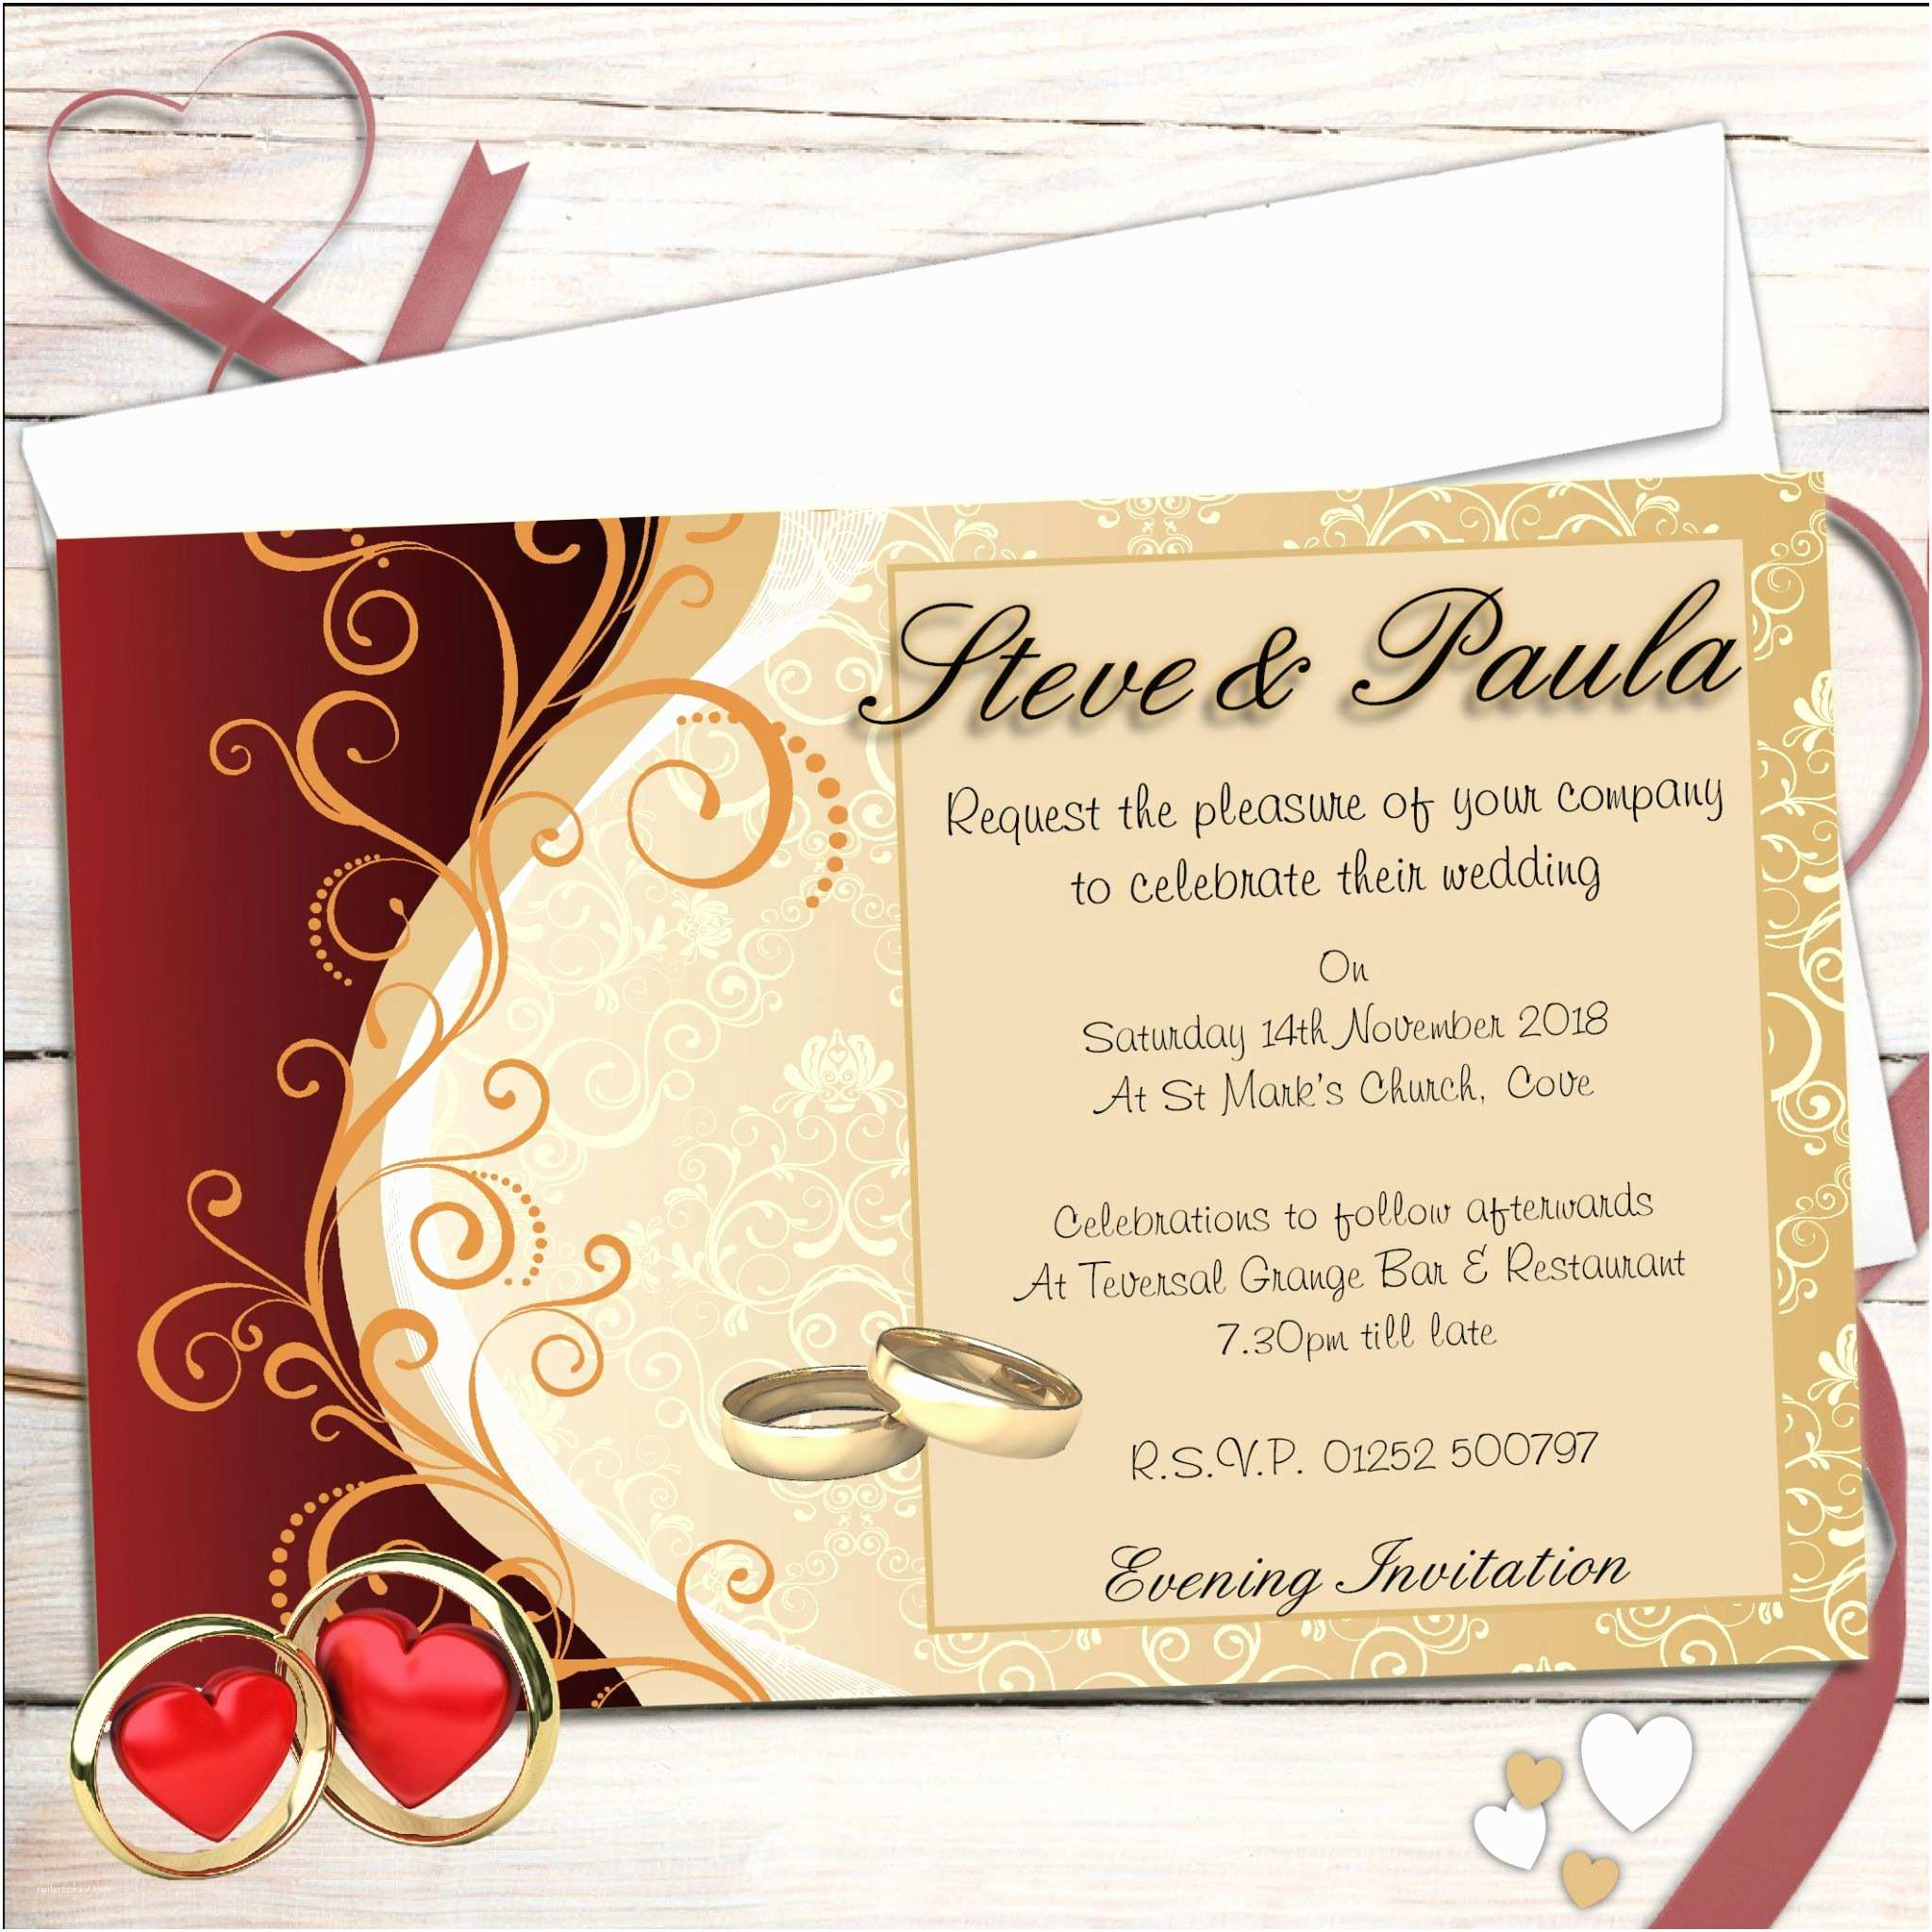 Red and Gold Wedding Invitations Wedding Invitation Background Designs Red and Gold